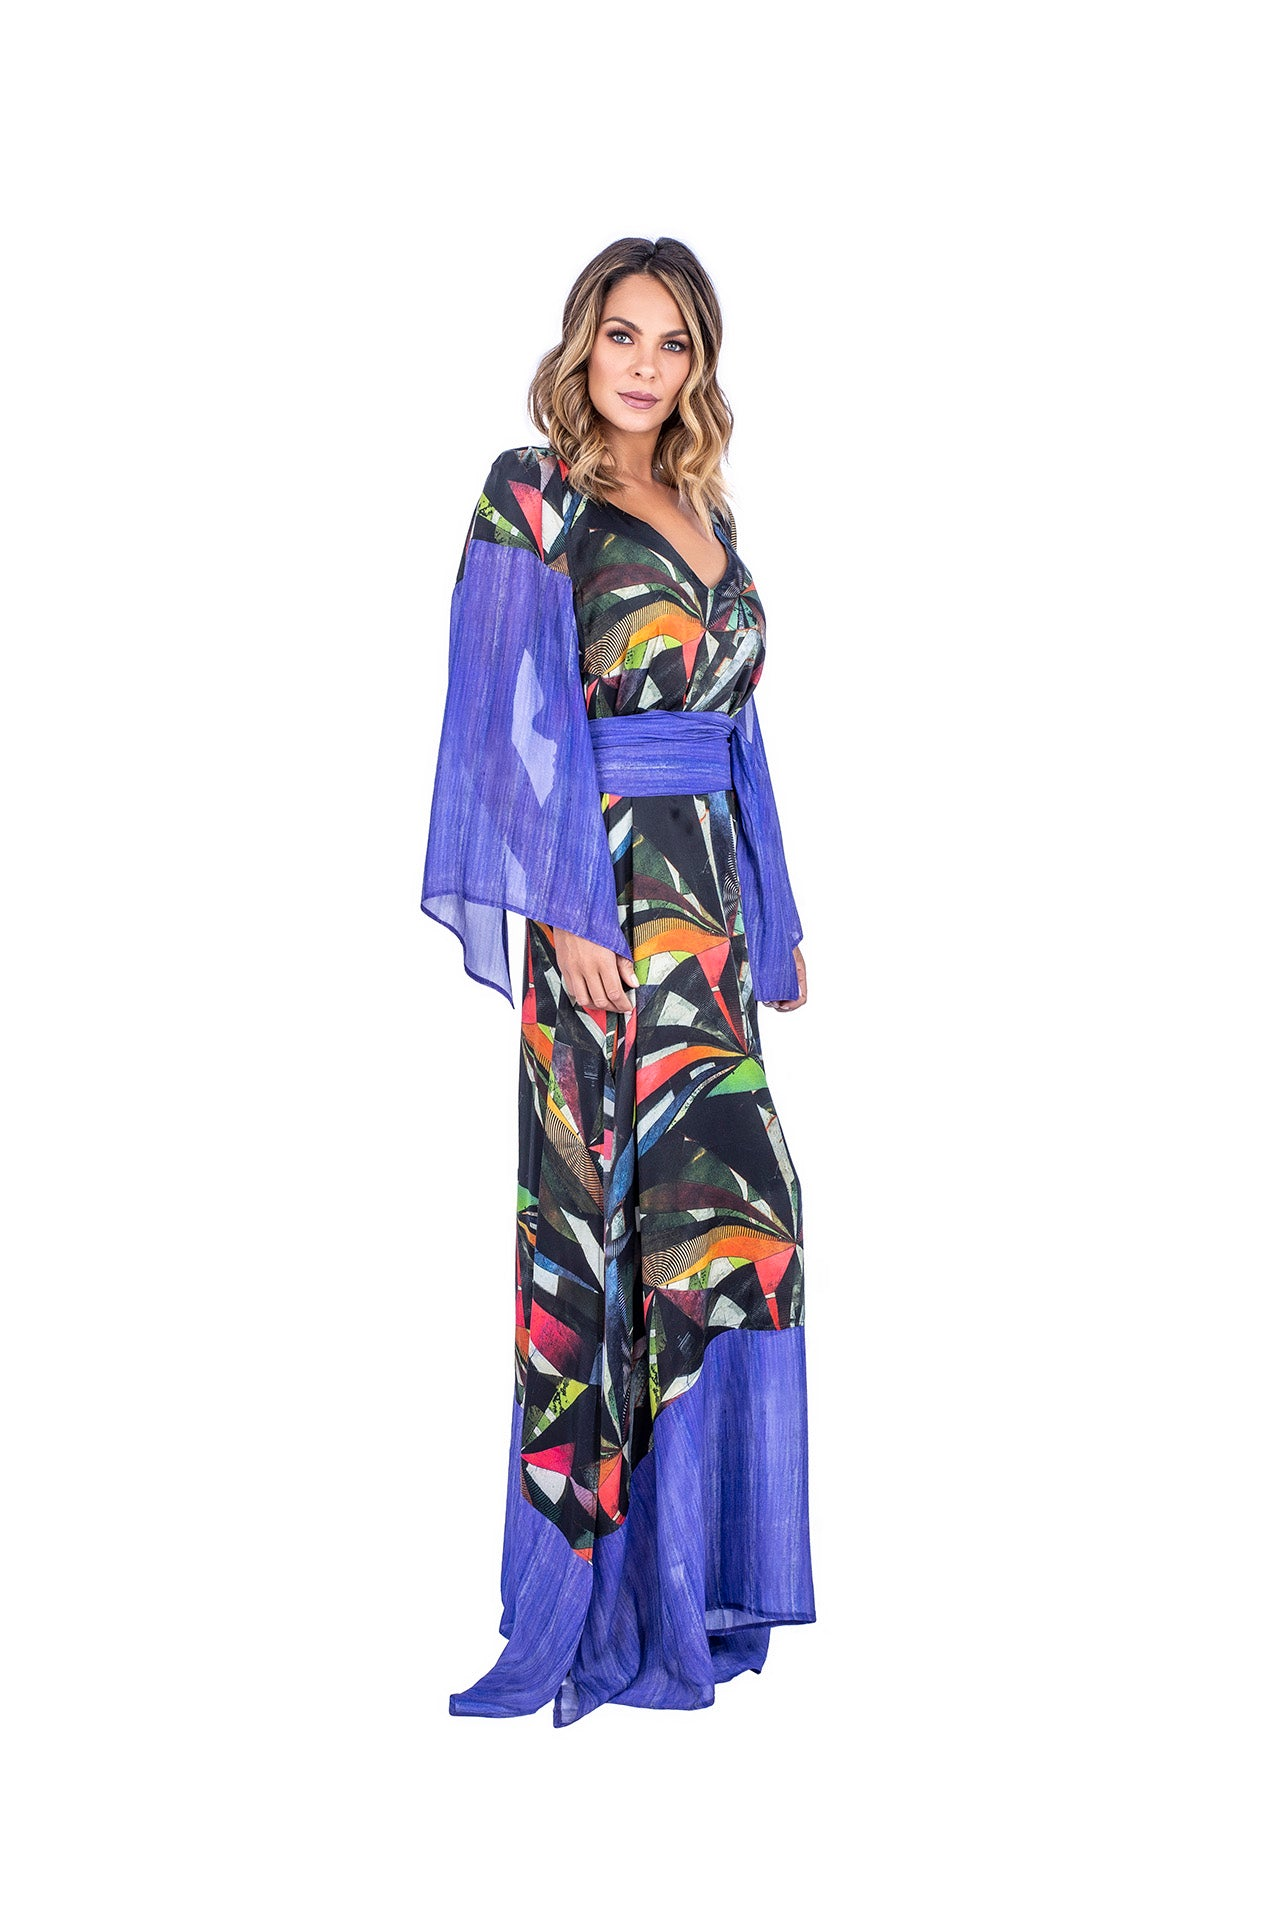 Pinta Kaftan - Color Eclipse Print  - artTECA